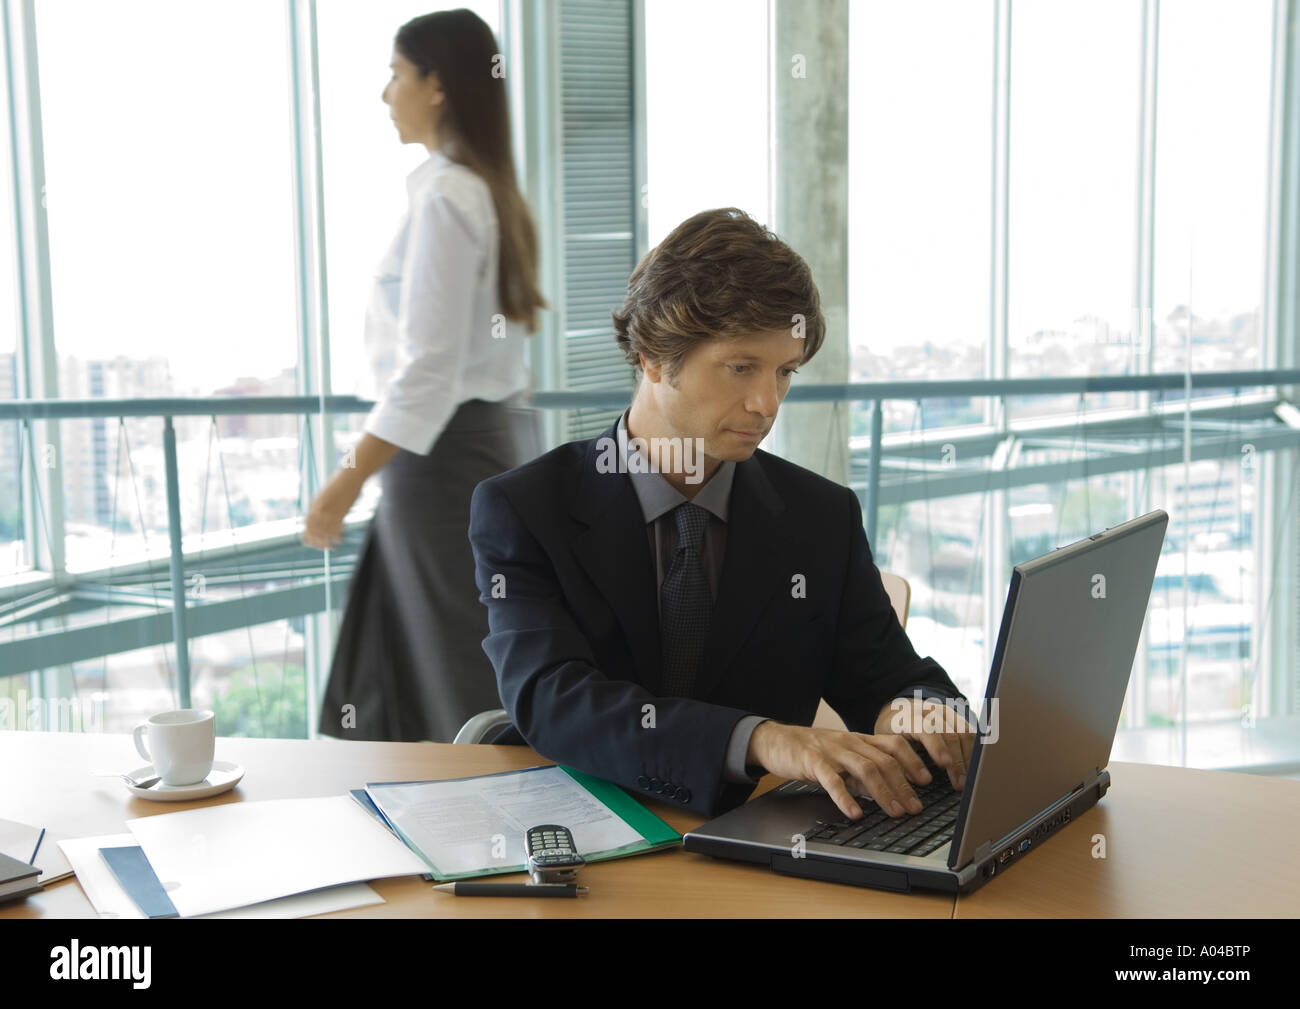 Businessman using laptop, woman walking by in background - Stock Image